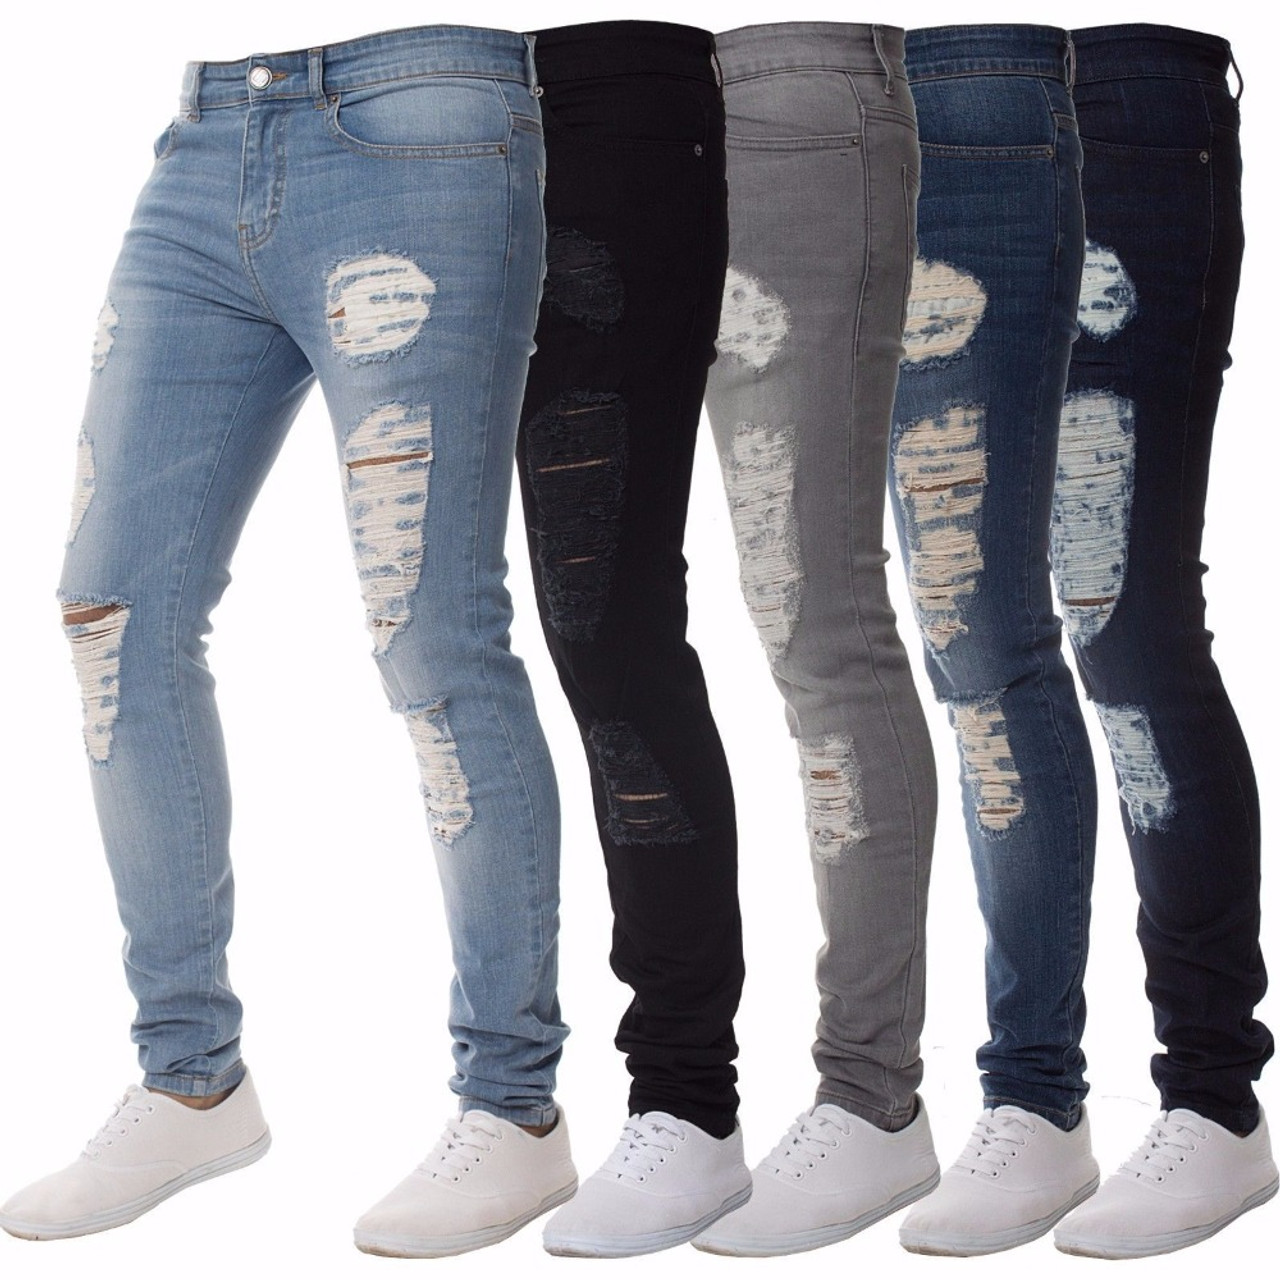 d8b0e822a39 ... Mens Casual Skinny Jeans Pants Men Solid black ripped jeans men Ripped  Beggar Jeans With Knee ...